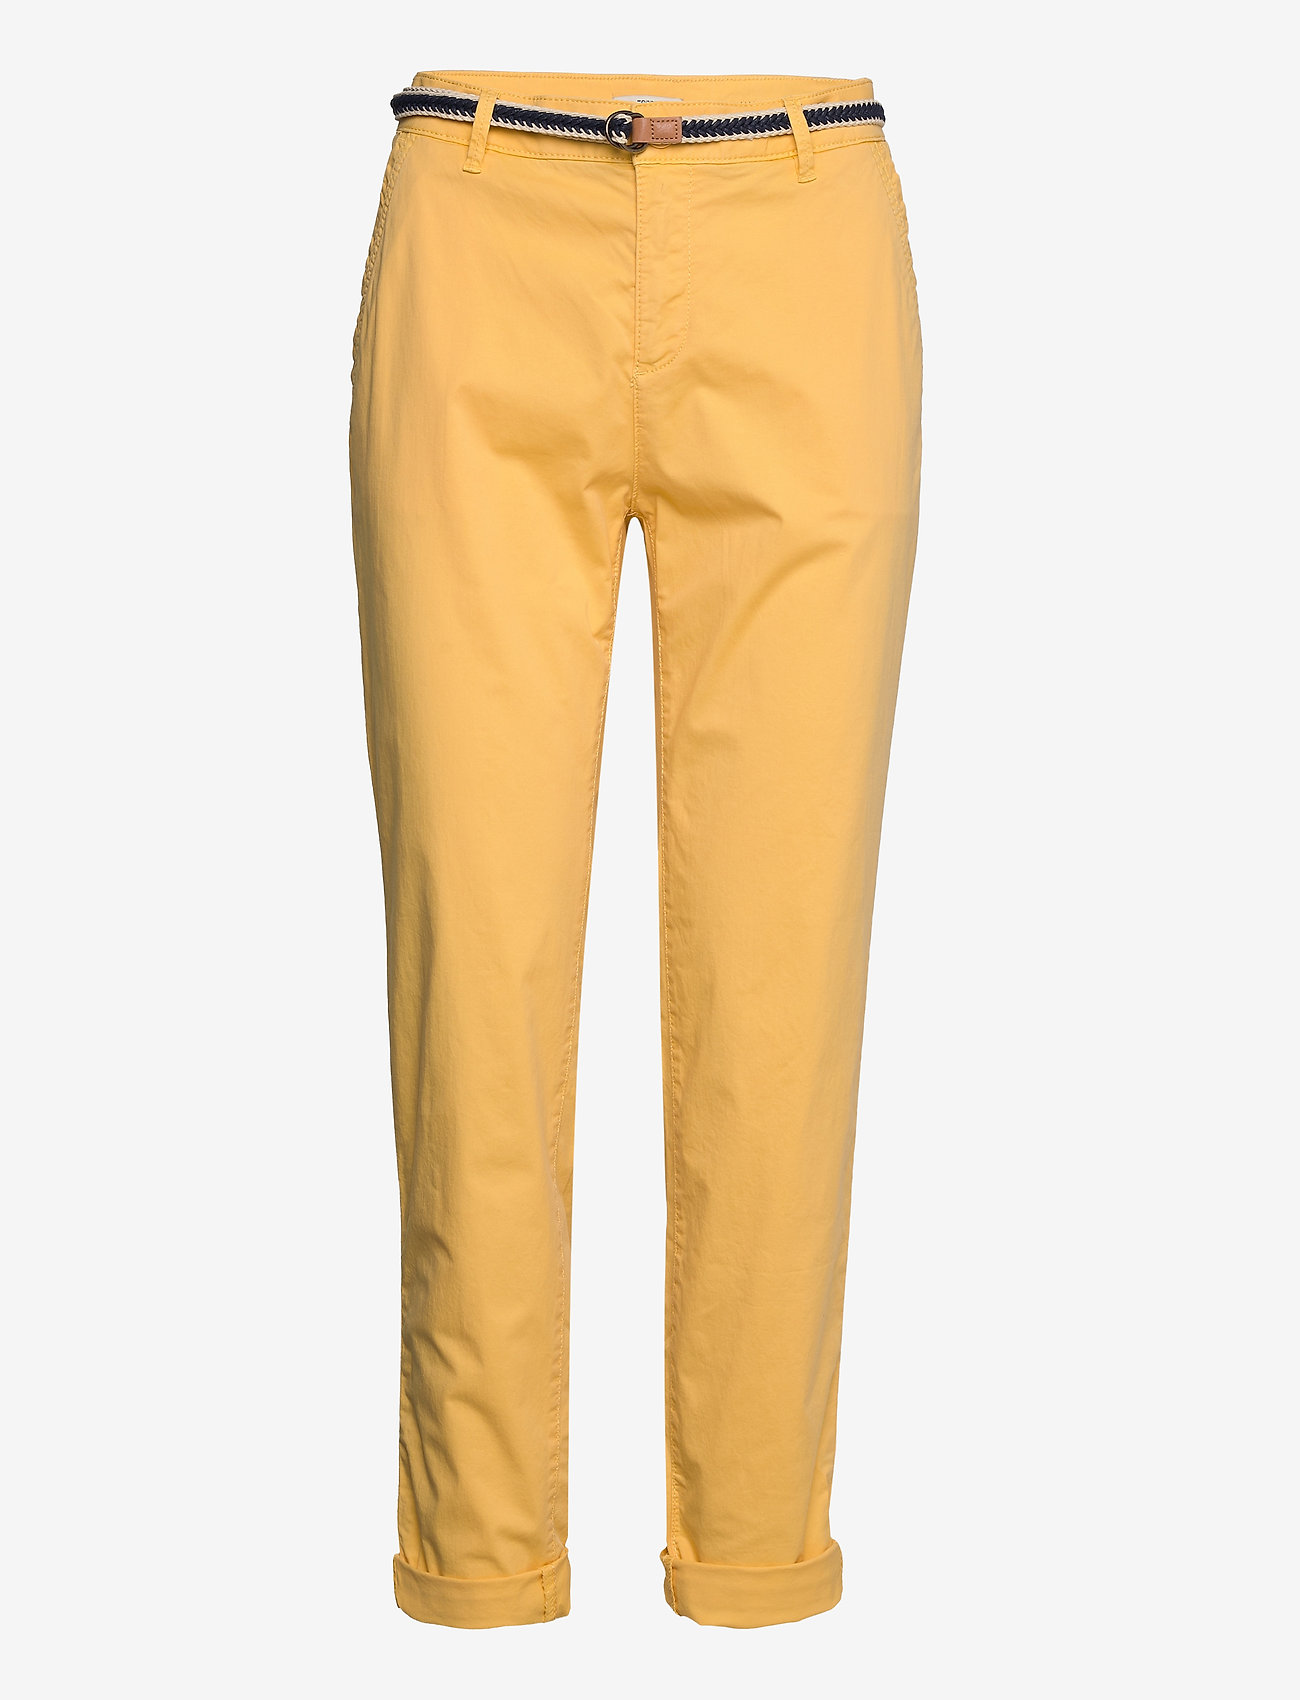 Esprit Casual - Pants woven - chinos - sunflower yellow - 0